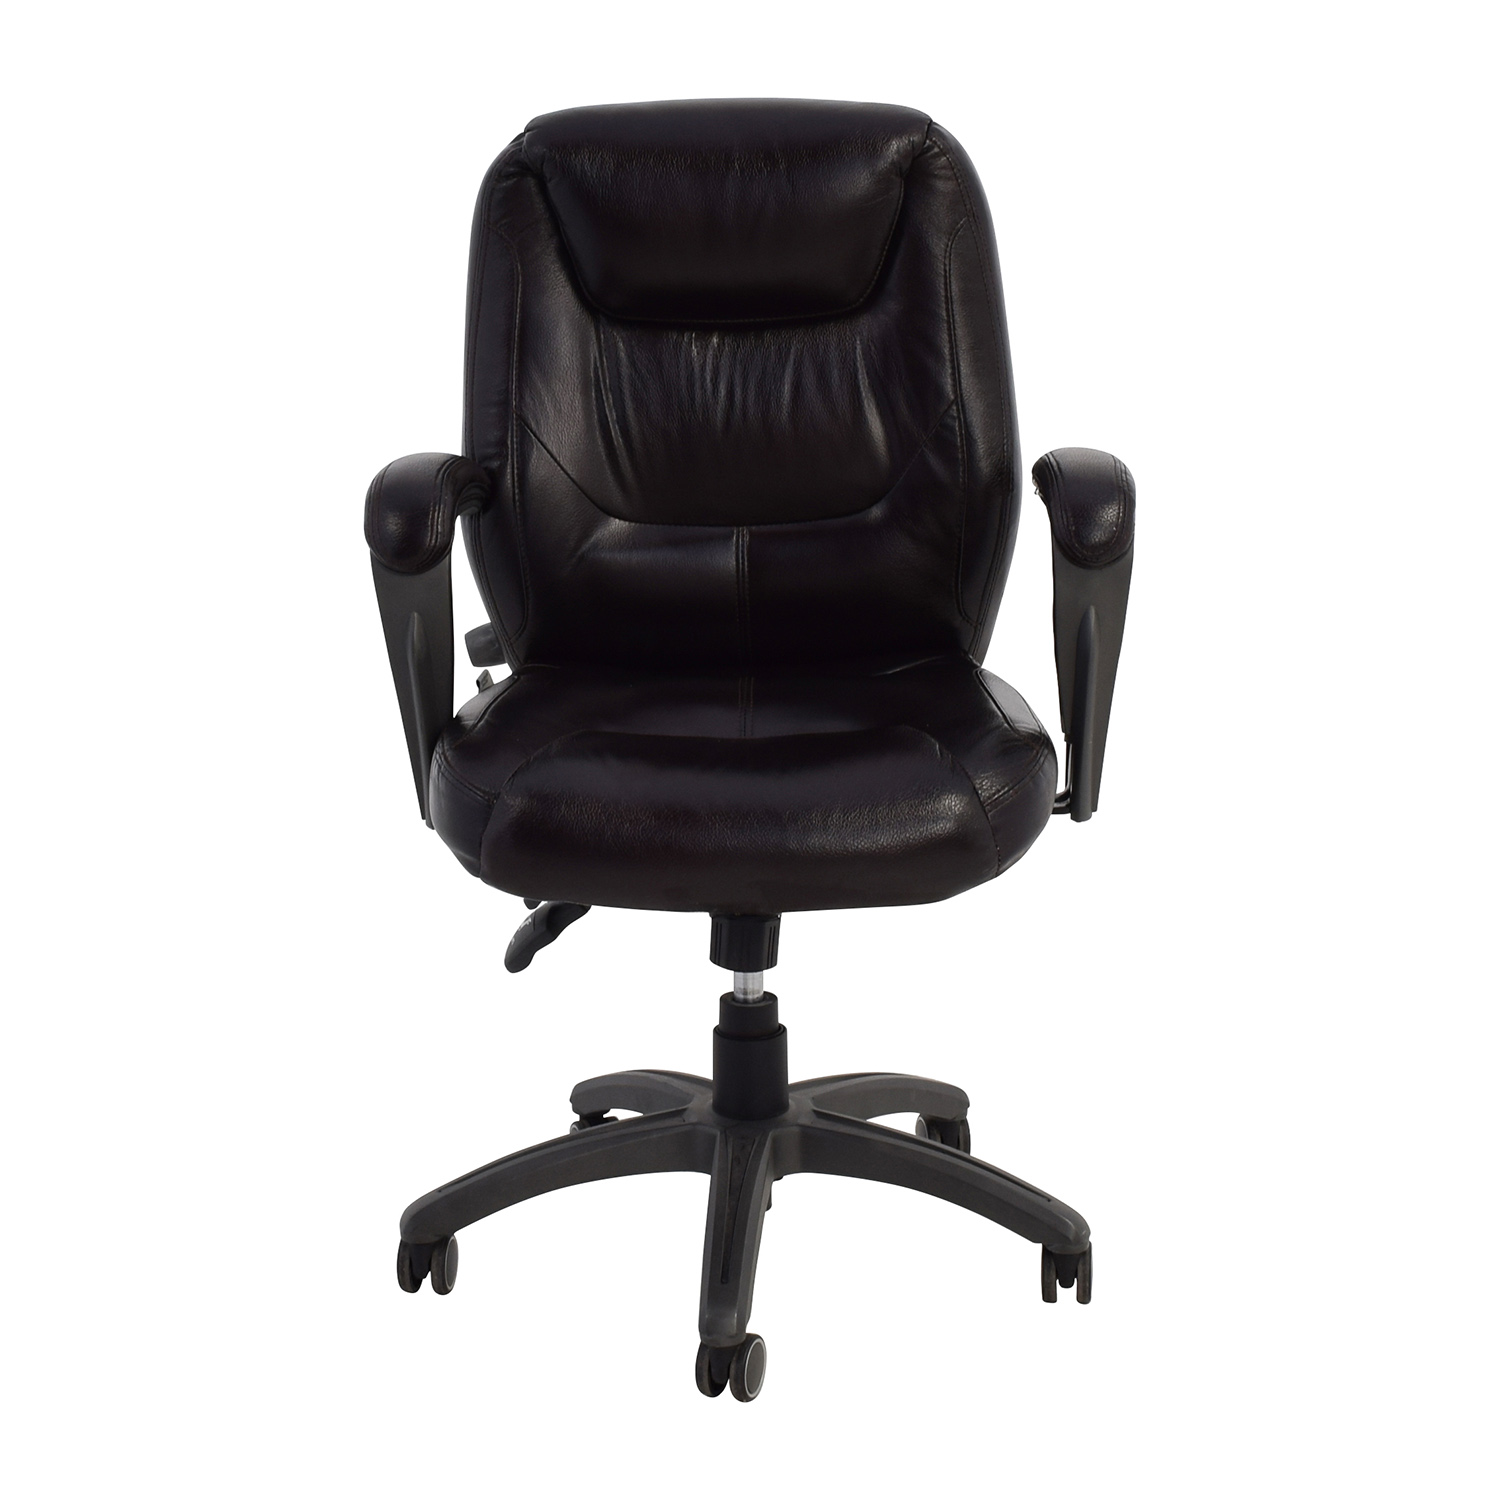 81% OFF   Thomasville Thomasville Brown Leather Rolling Desk Chair / Chairs